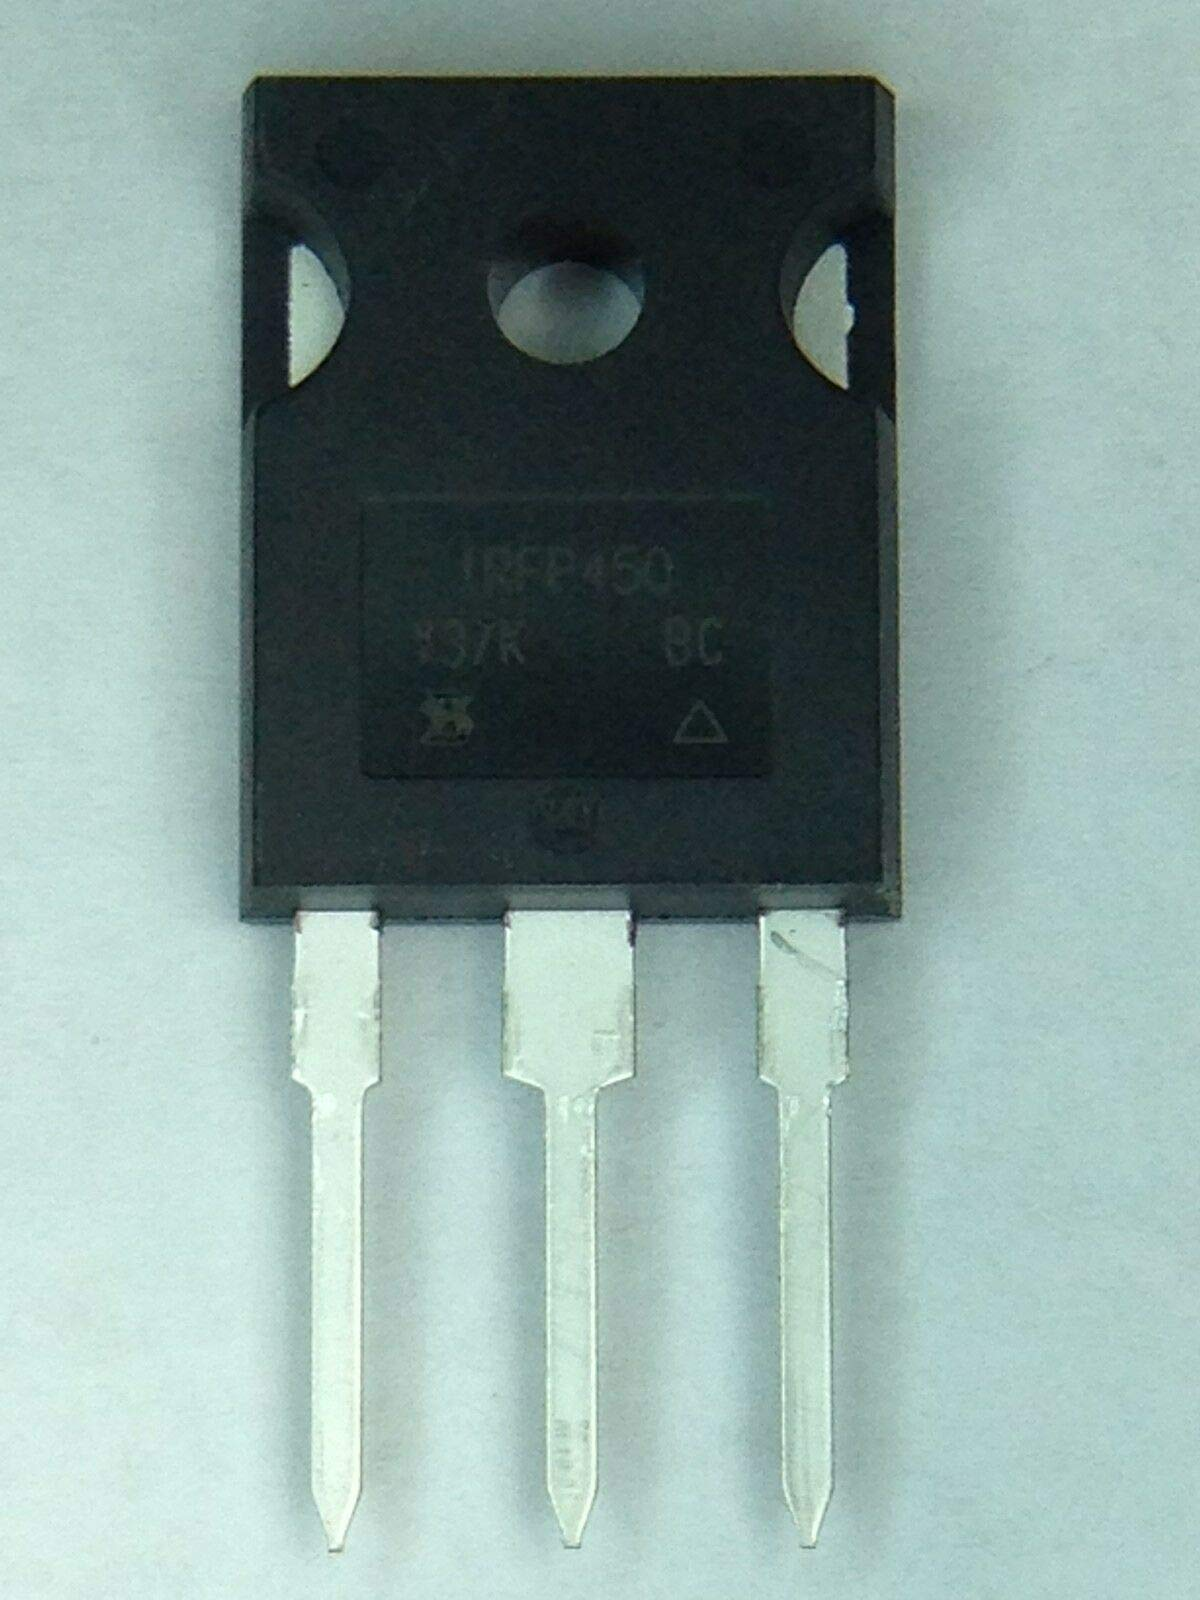 IRFP450 IRF450 Power MOSFET N-Channel 14A 500V 10pcs